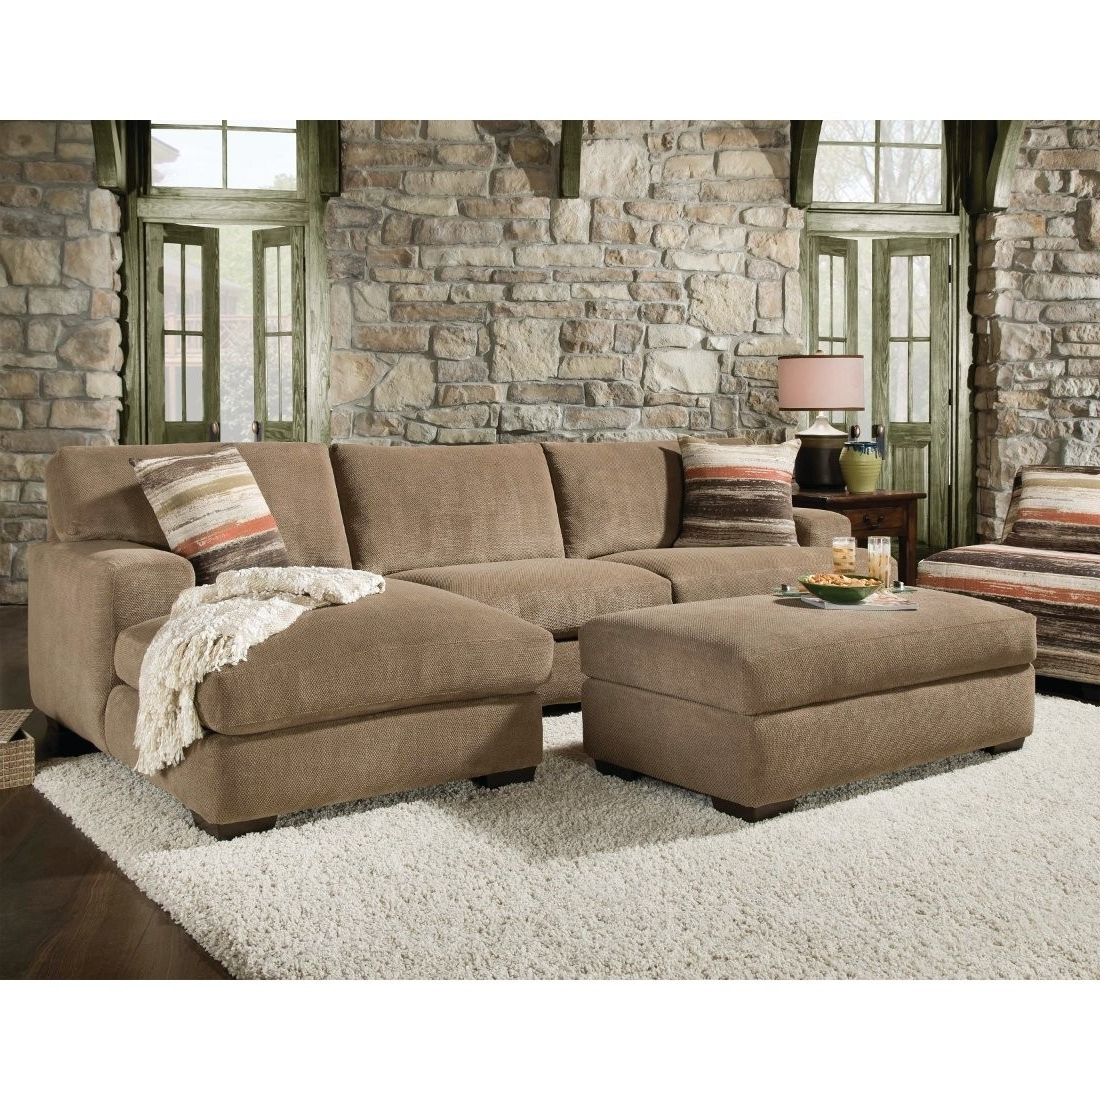 Beautiful Sectional Sofa With Chaise And Ottoman Pictures Inside Trendy Double Chaise Sectionals (View 14 of 15)